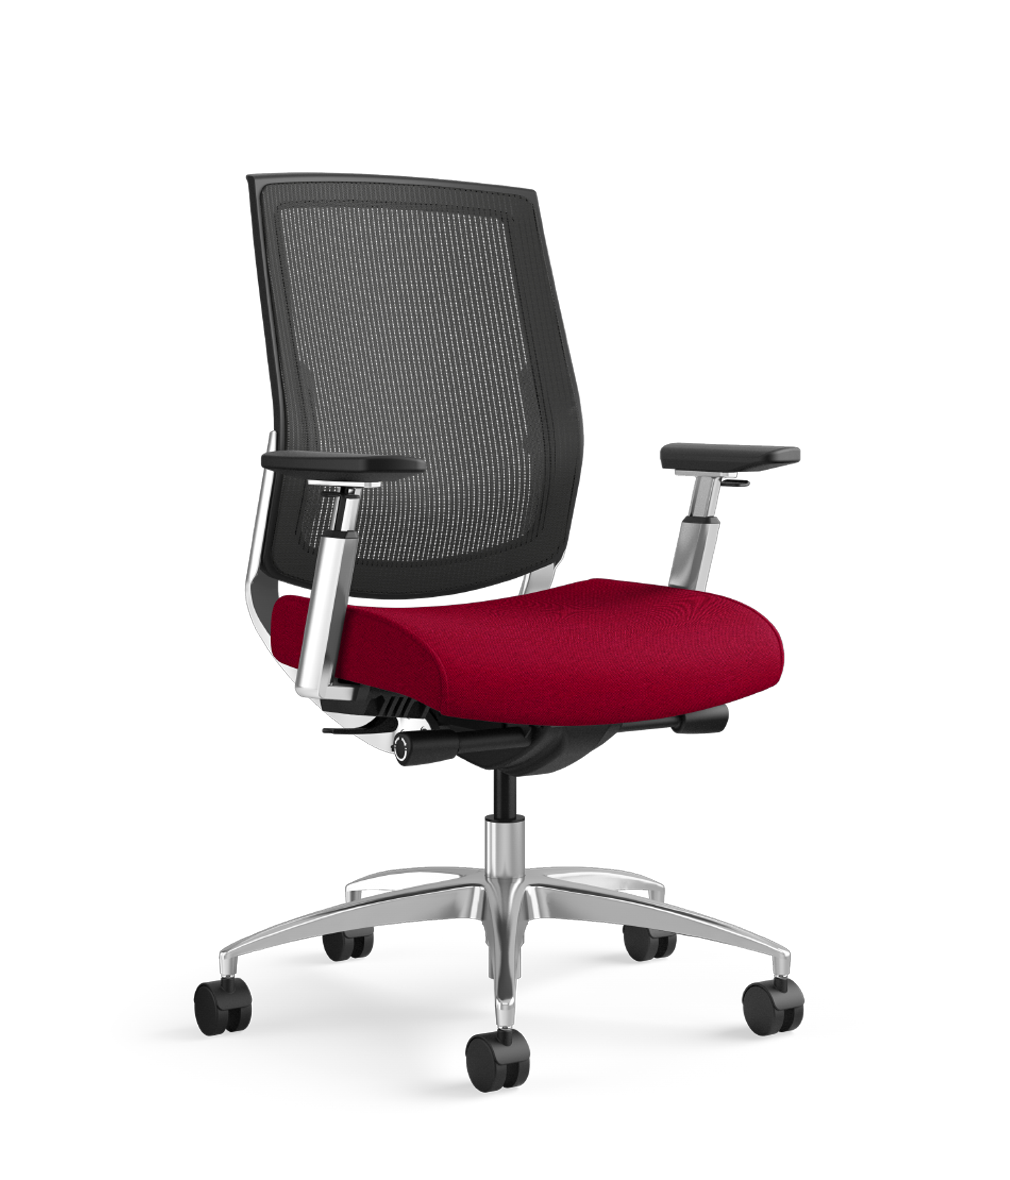 Charmant Focus Executive Highback Mesh Chair, Designtex Rocket Flame, Polished  Aluminum Base